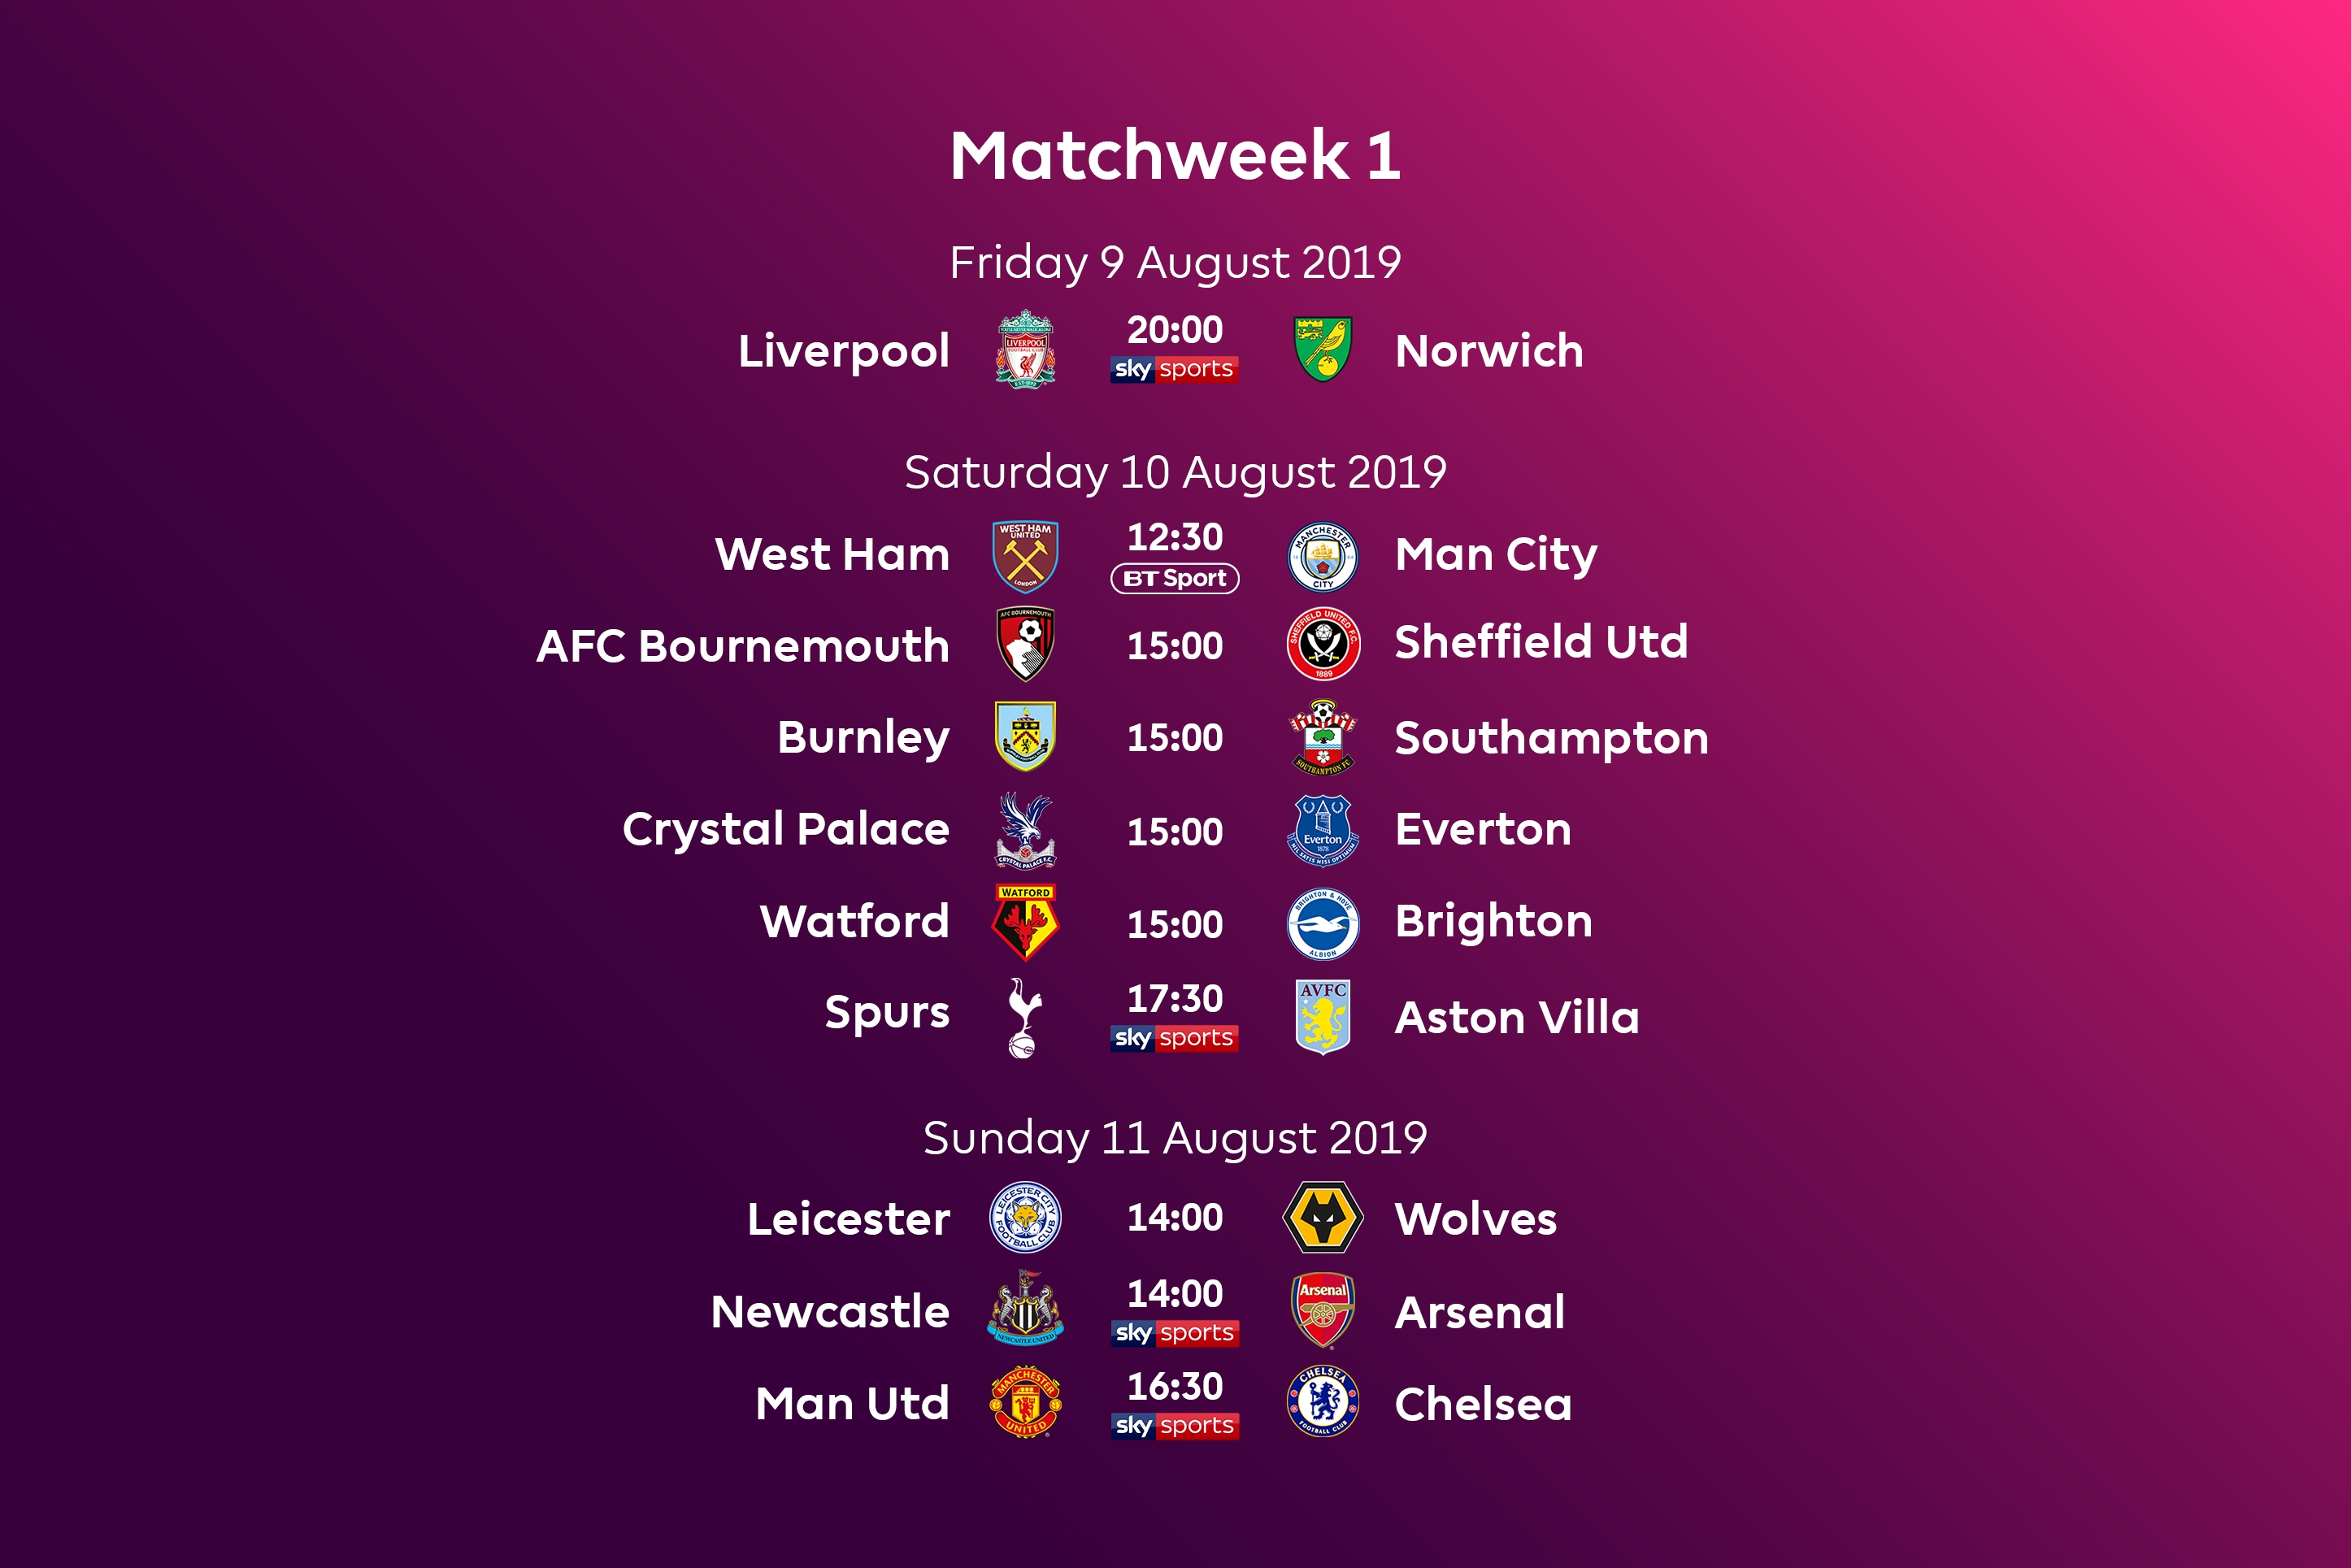 sky sports fixed matches and results